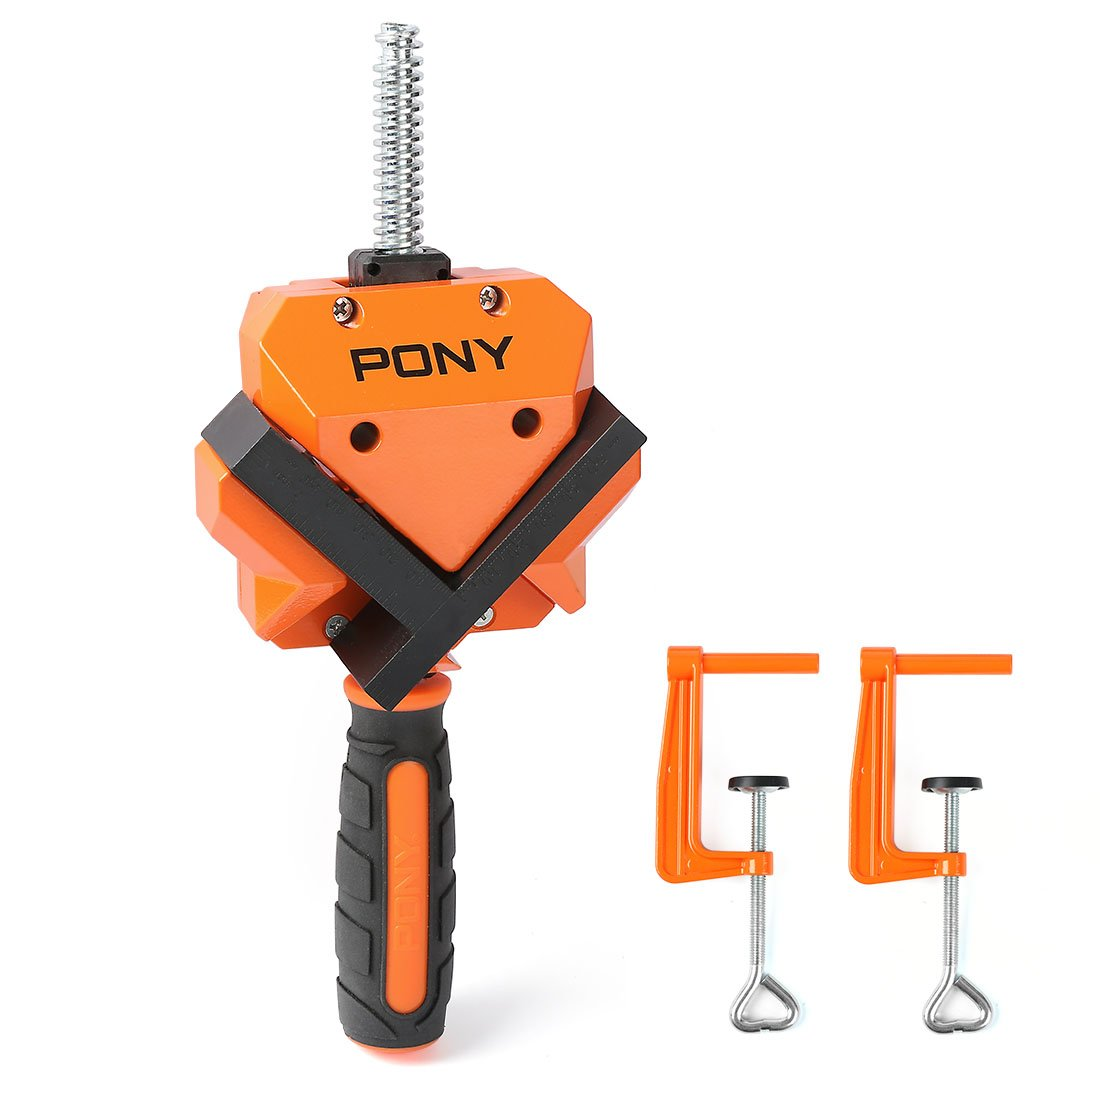 PONY Angle Clamp 90-Degree, Adjustable Corner Vise with 2 Table Clamps for Wood-working, Engineering, Welding